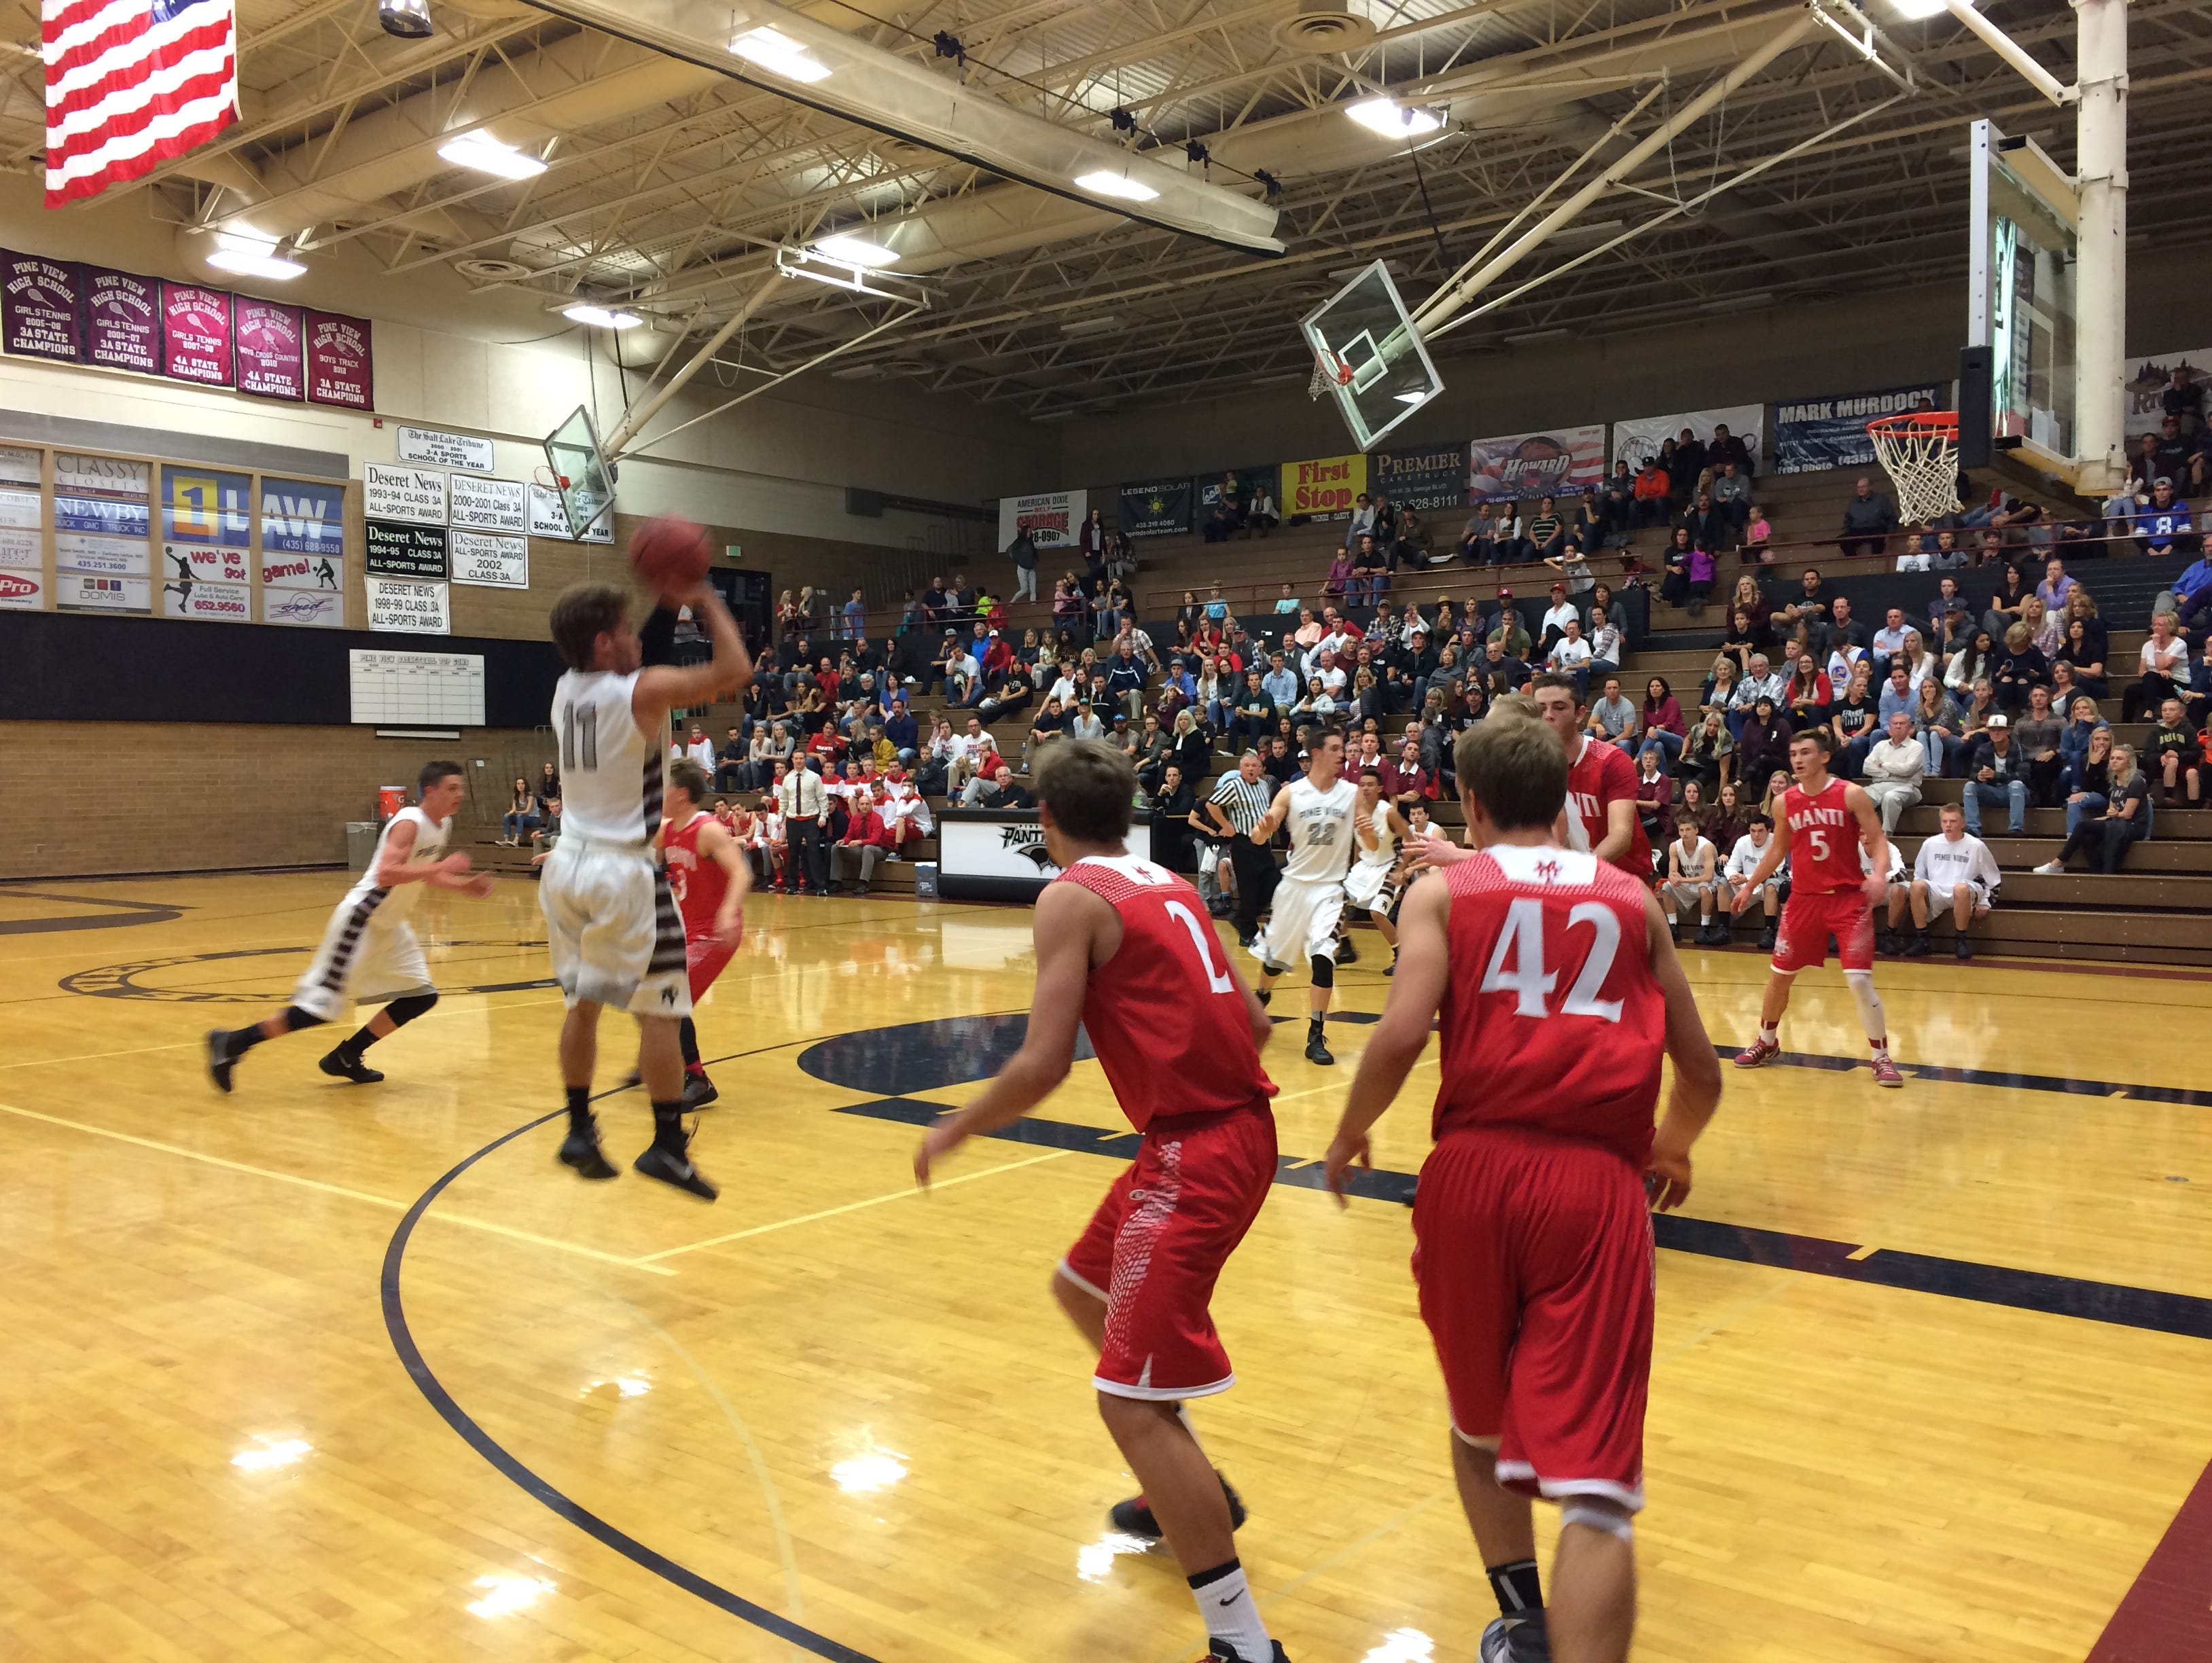 Pine View's Tyler Johnston scored 22 points as the Panthers beat Manti, 70-59, in the home opener on Tuesday.